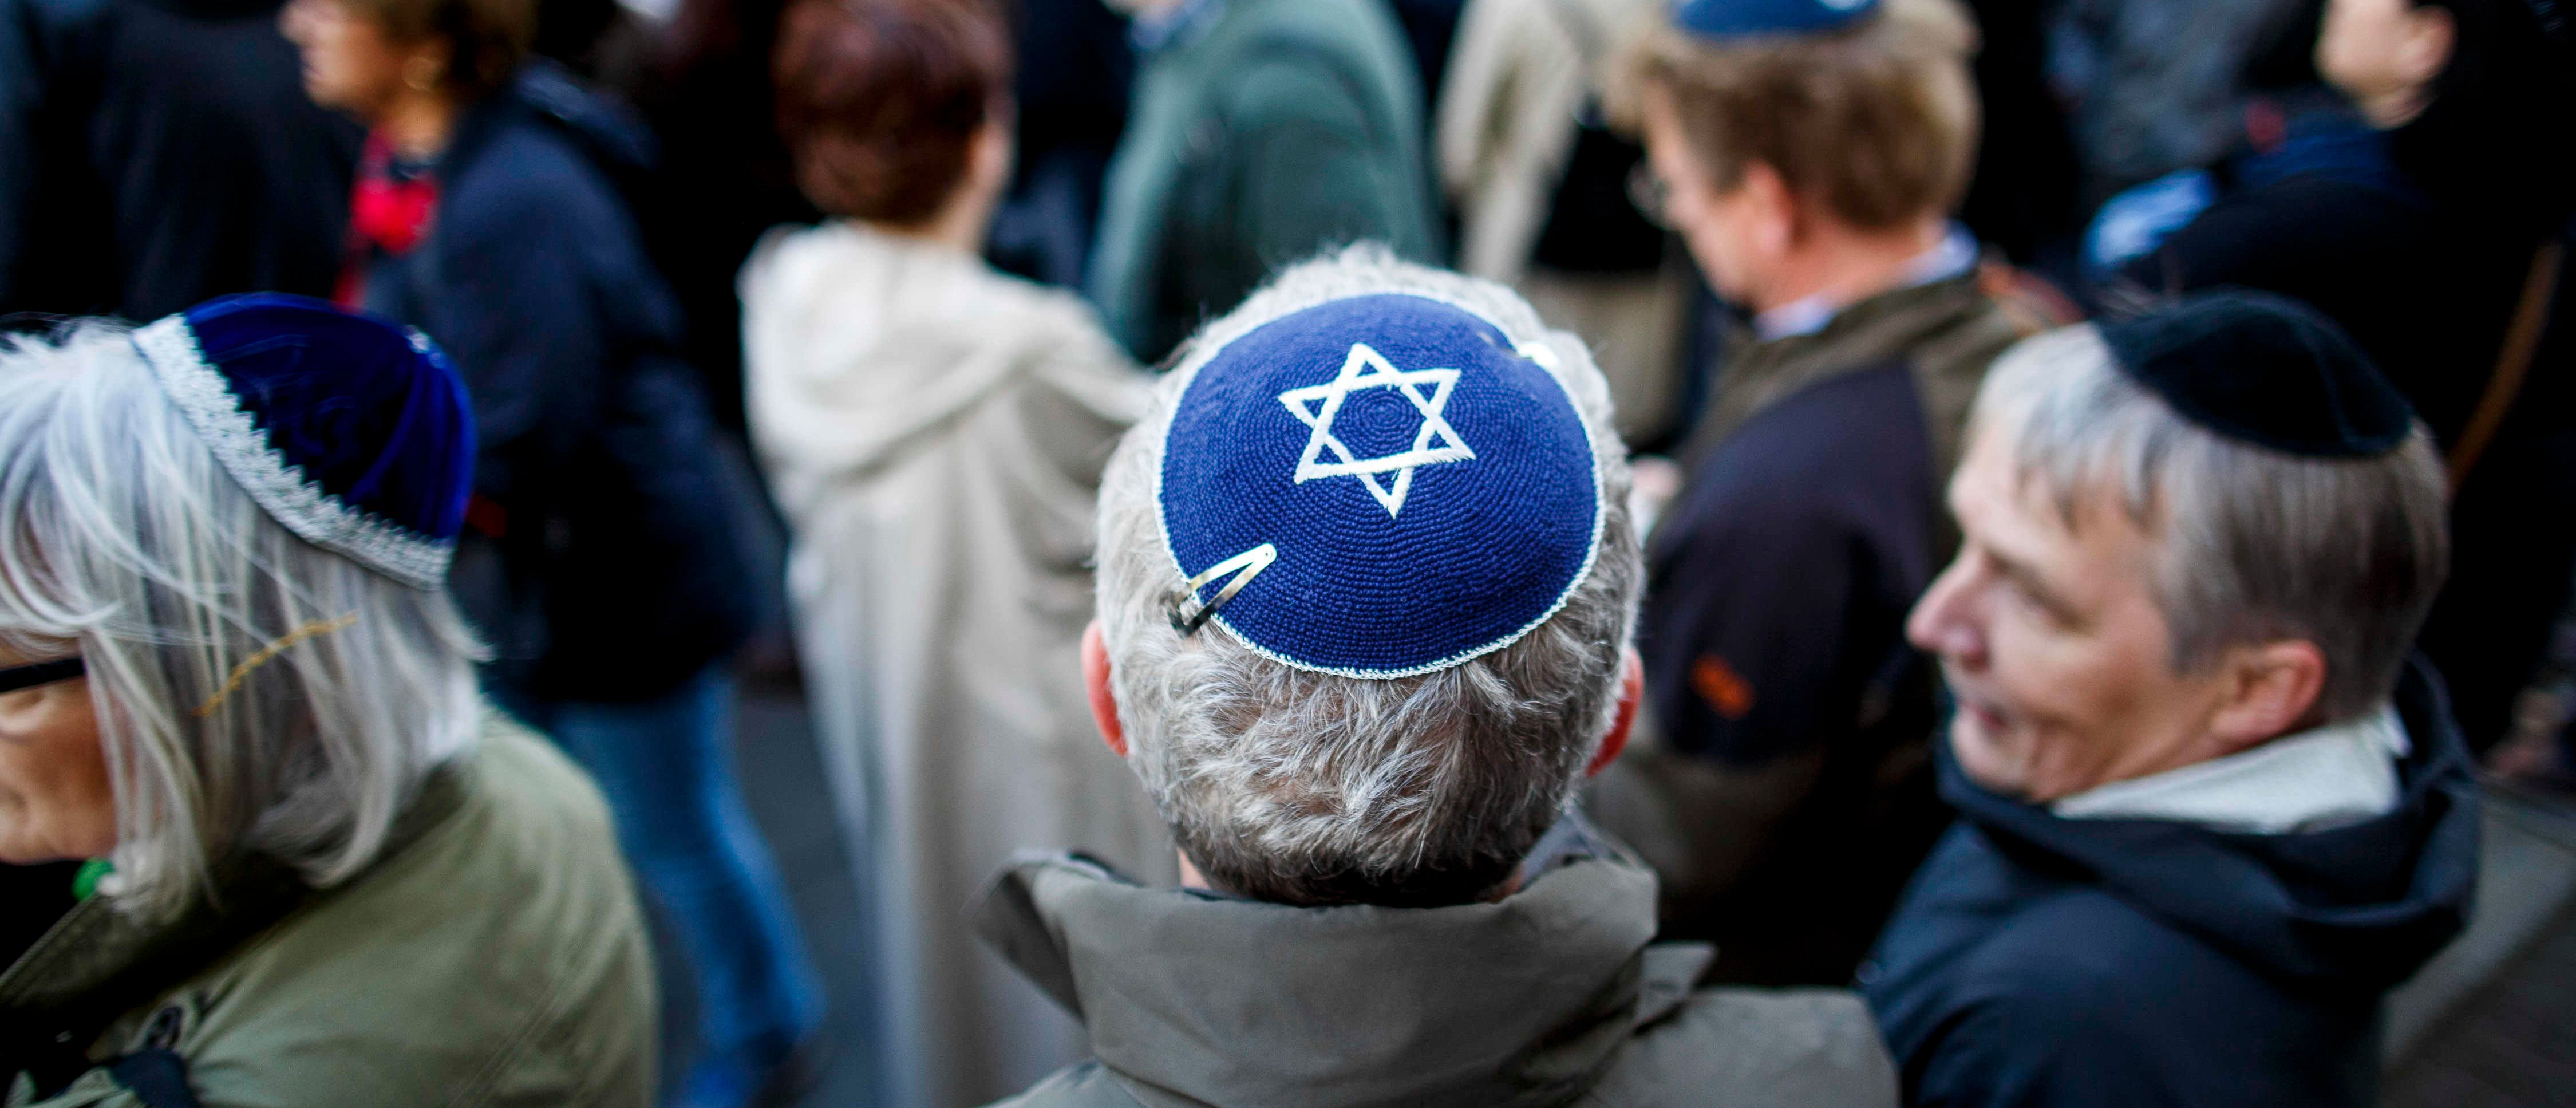 Jewish Community Calls For Kippah Gathering To Protest Against Anti-Semitism